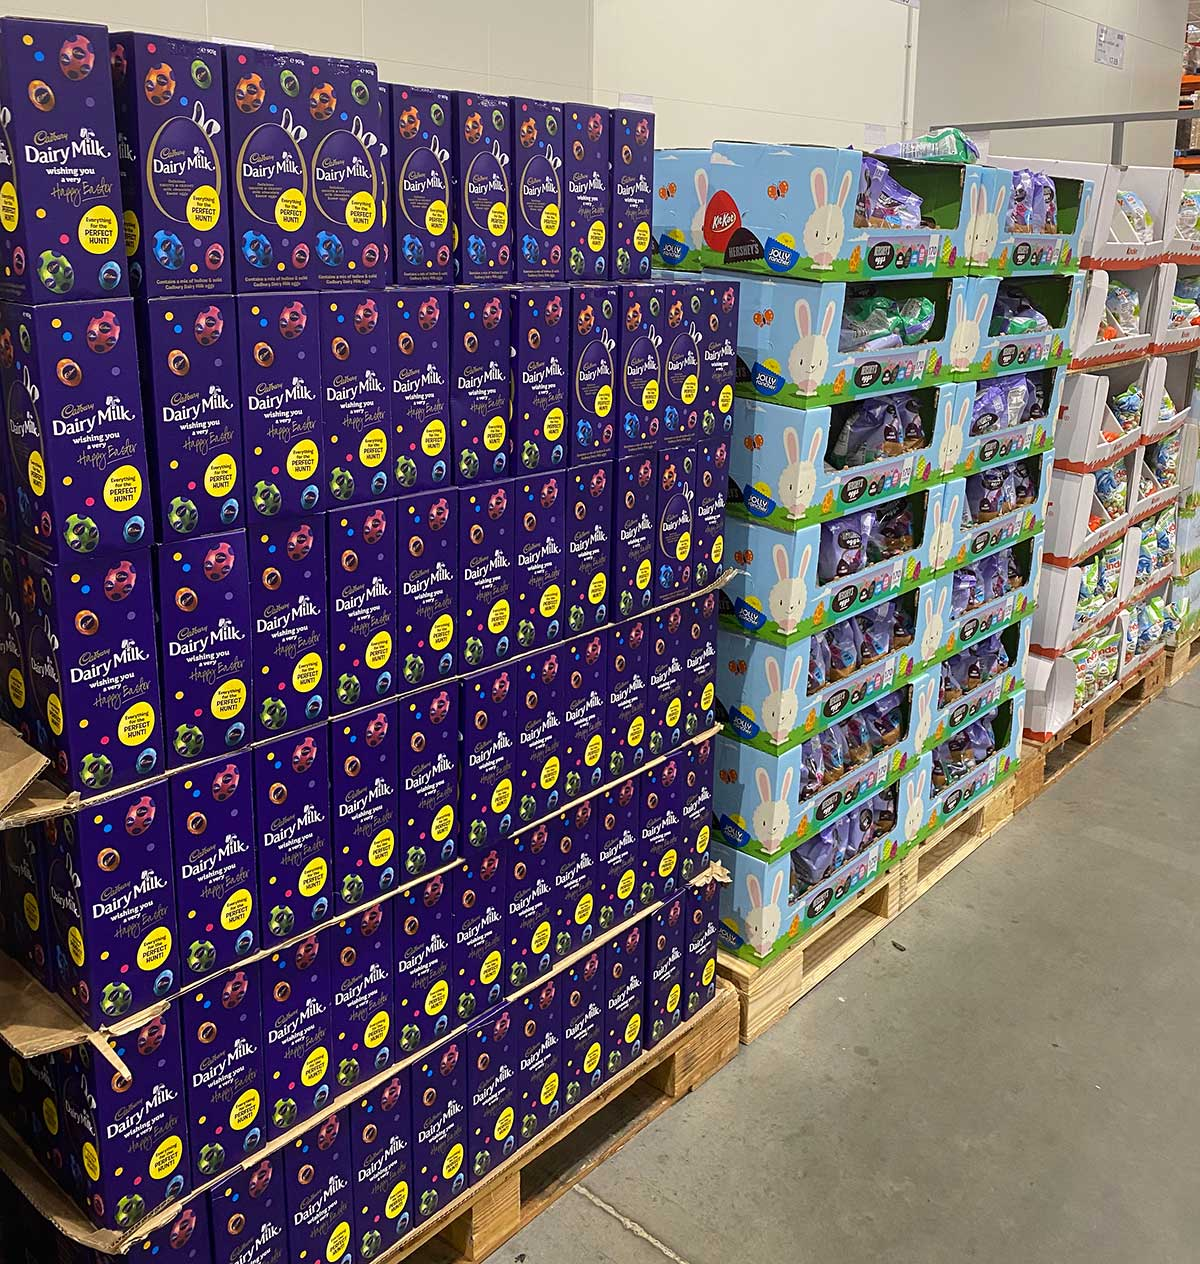 Costco Easter Eggs Products & Prices 2020